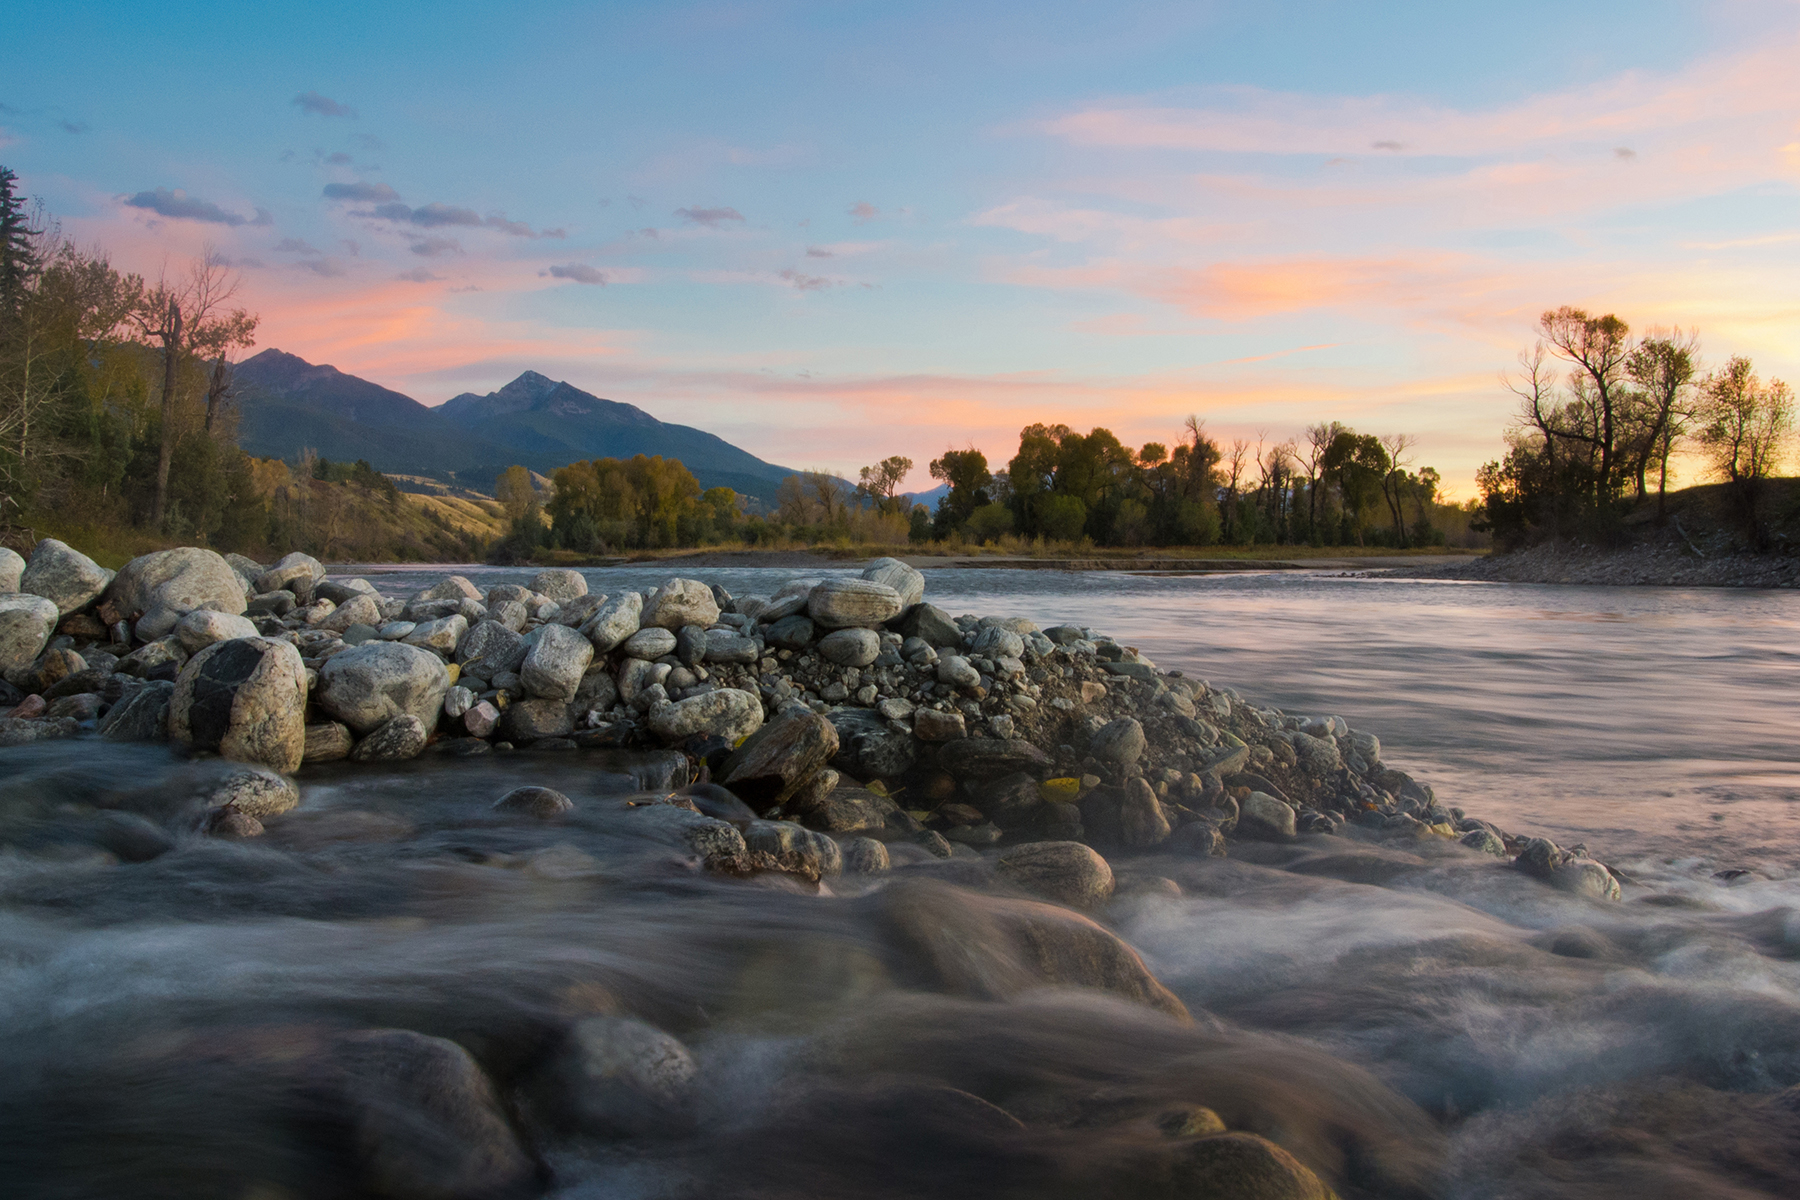 The sun sets on the iconic Yellowstone River in this nicely framed landscape.